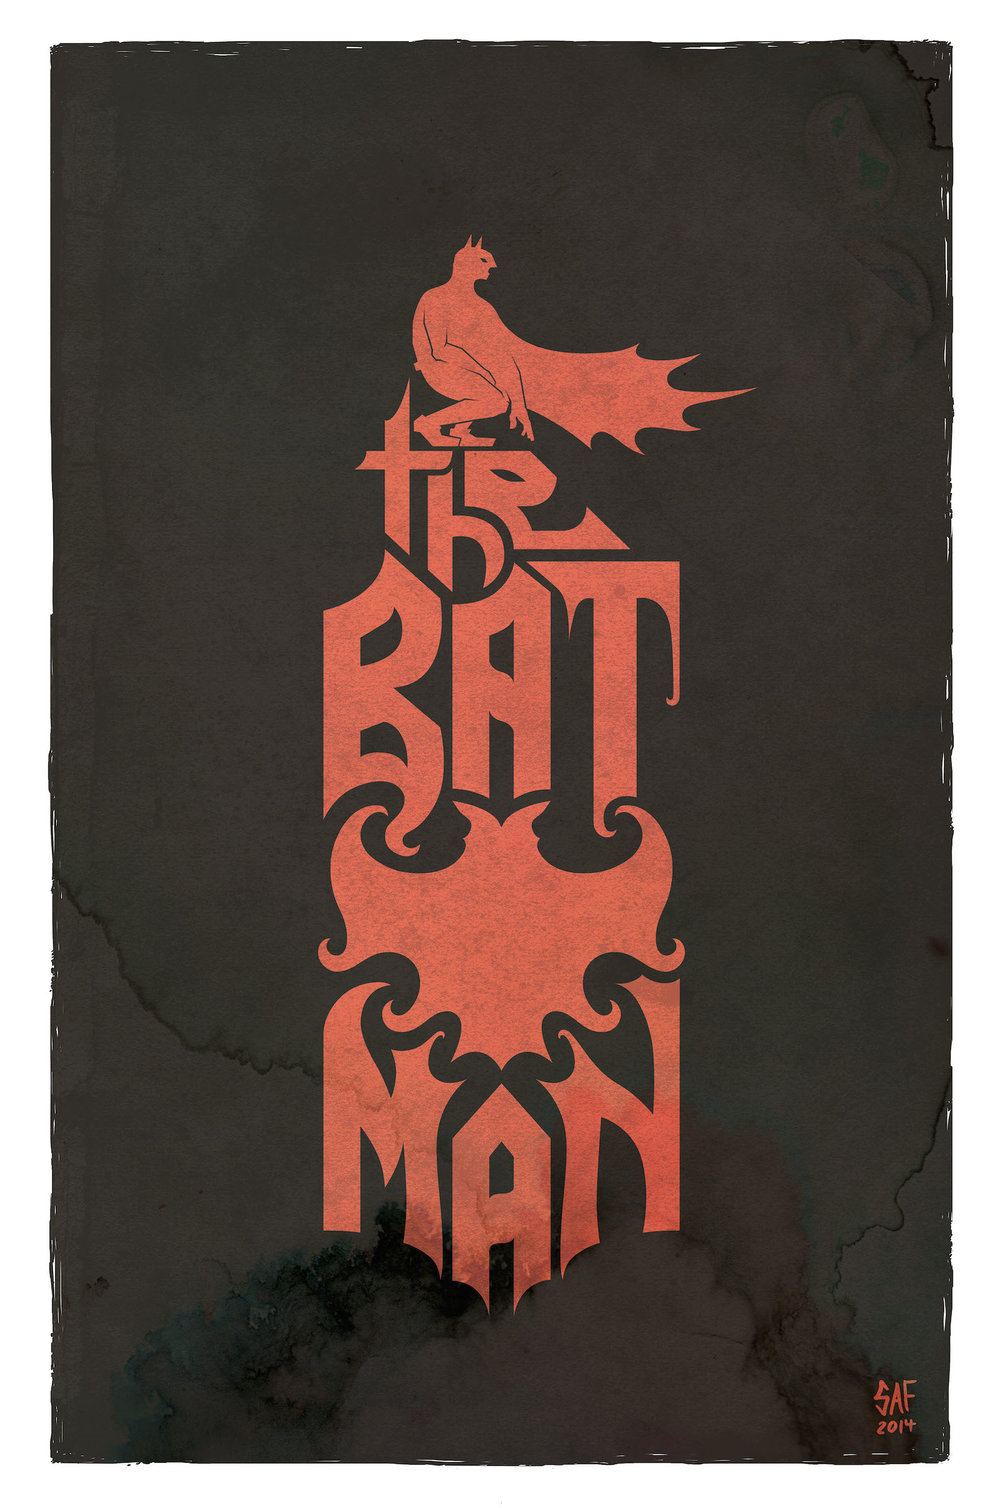 the BAT MAN copy.jpg